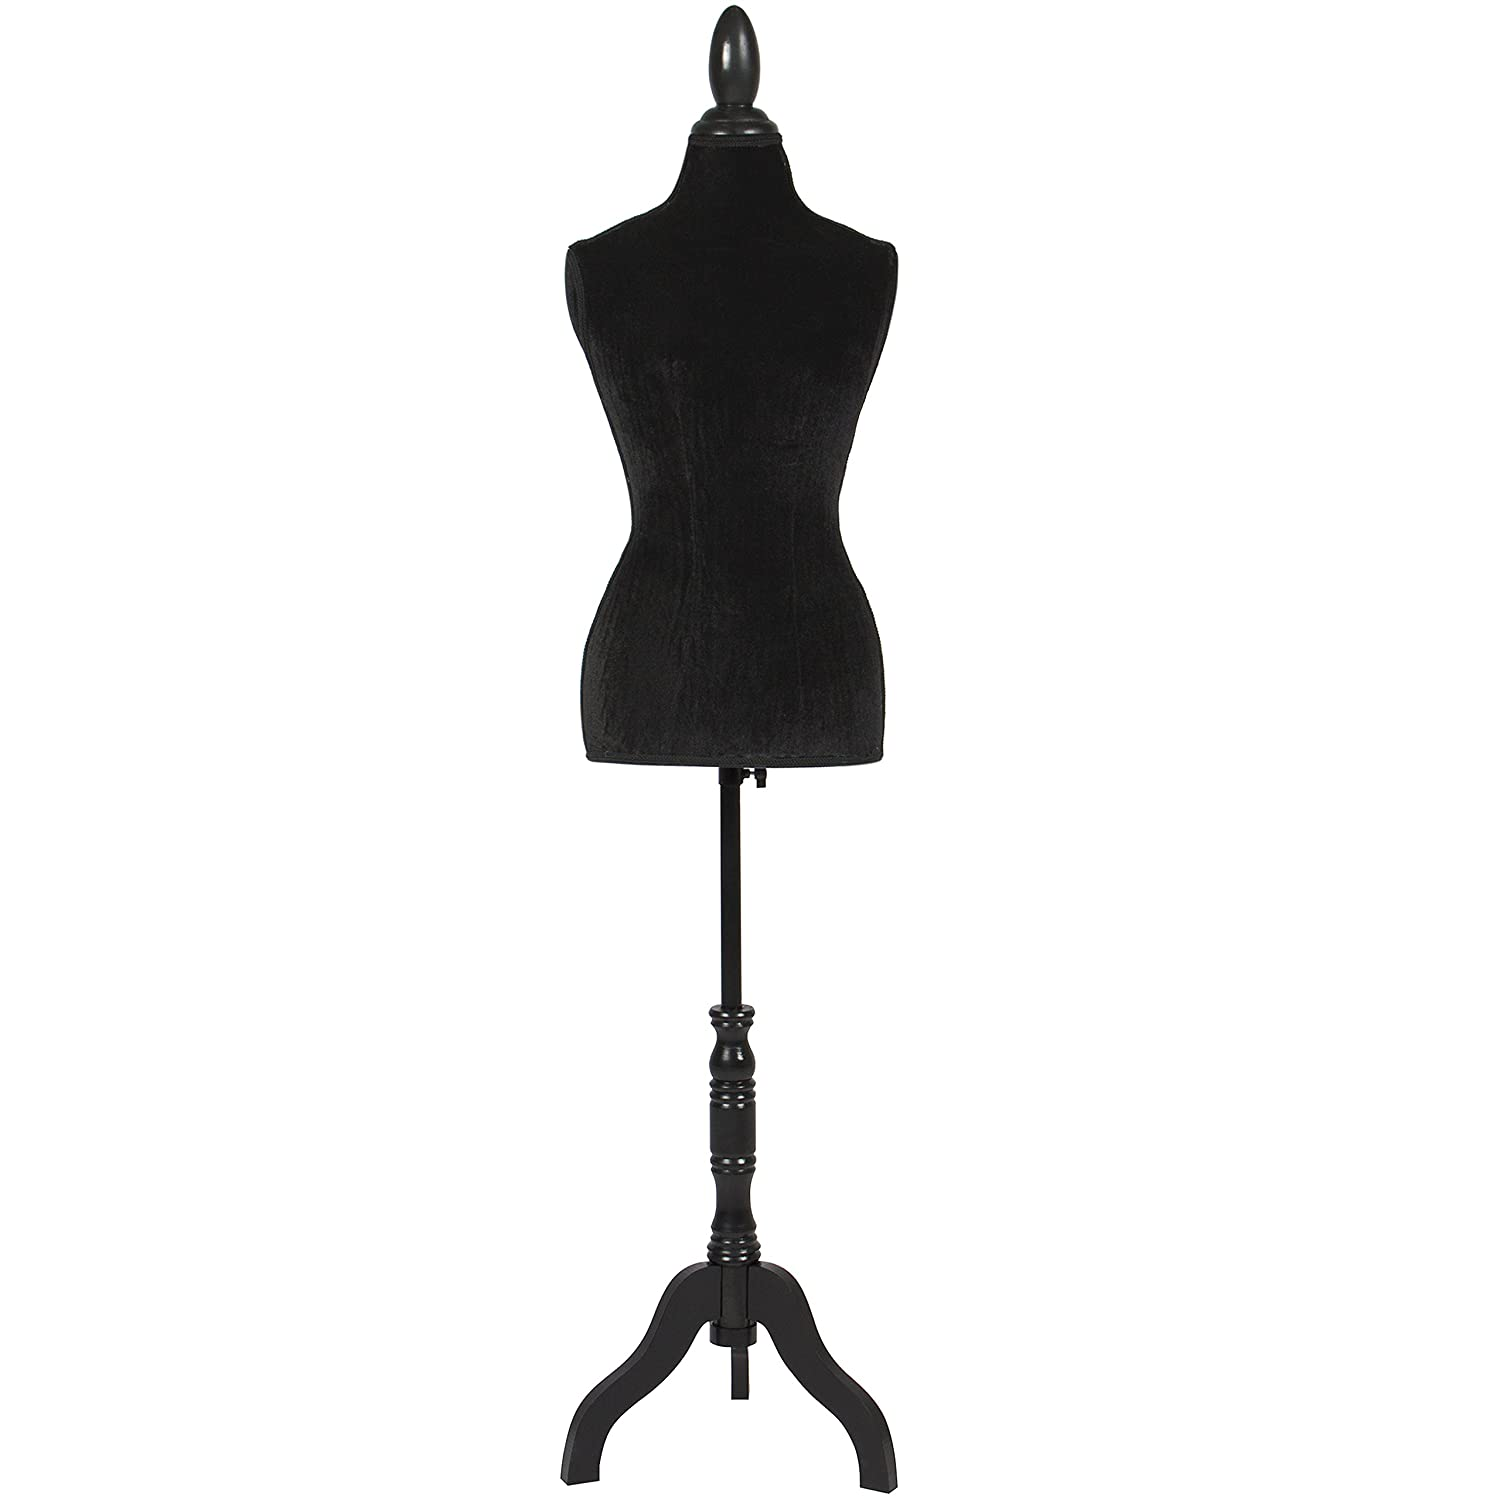 Amazon Best Choice Products Female Mannequin Torso Display w